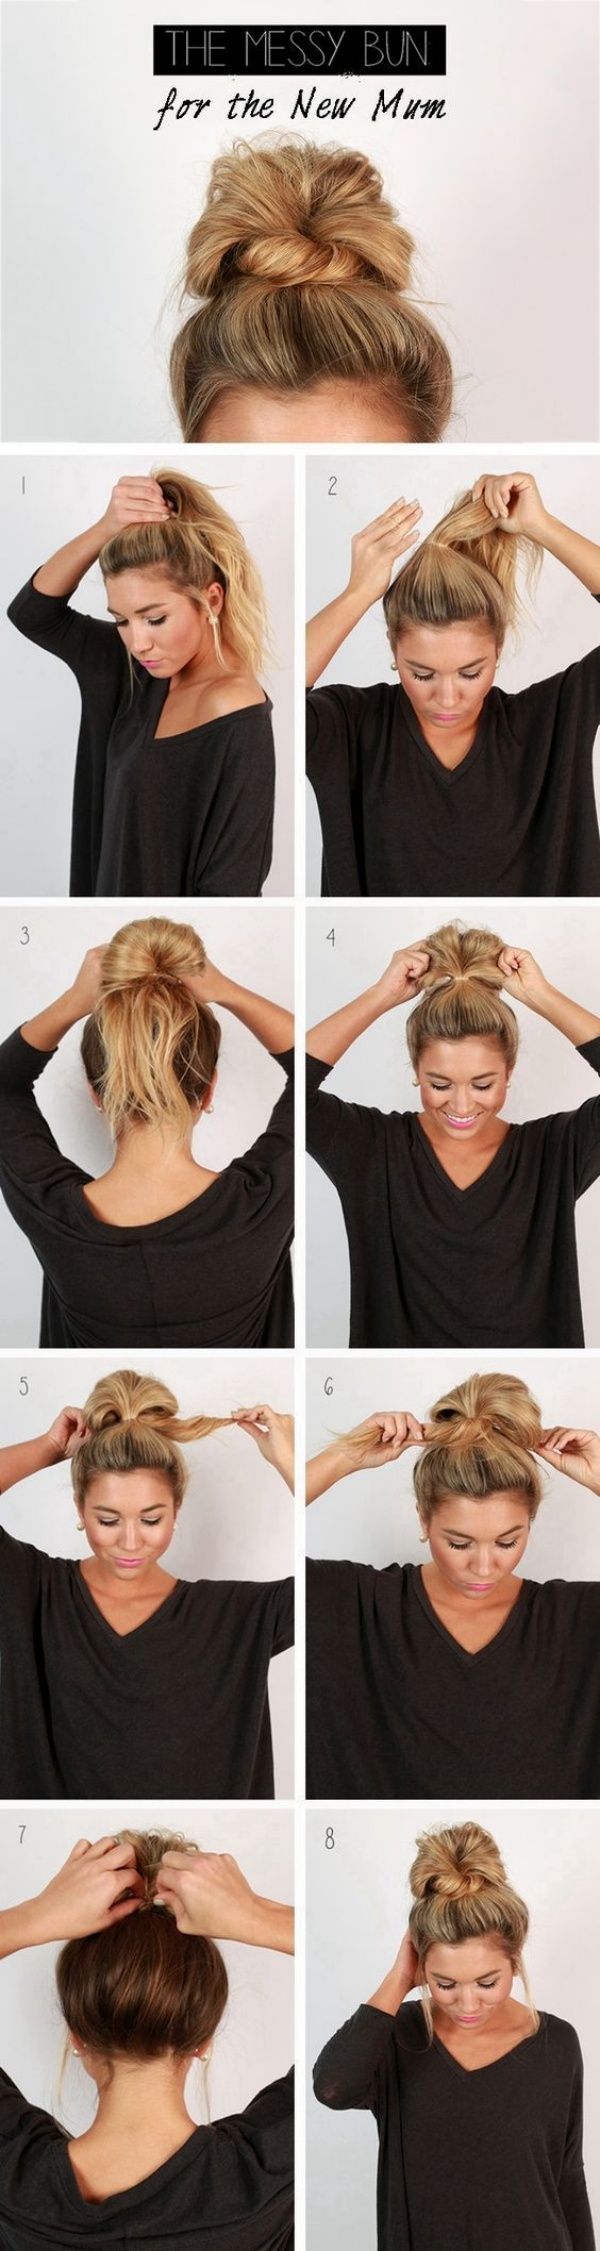 12 Very-Easy Hairstyles for Very-Busy Mornings